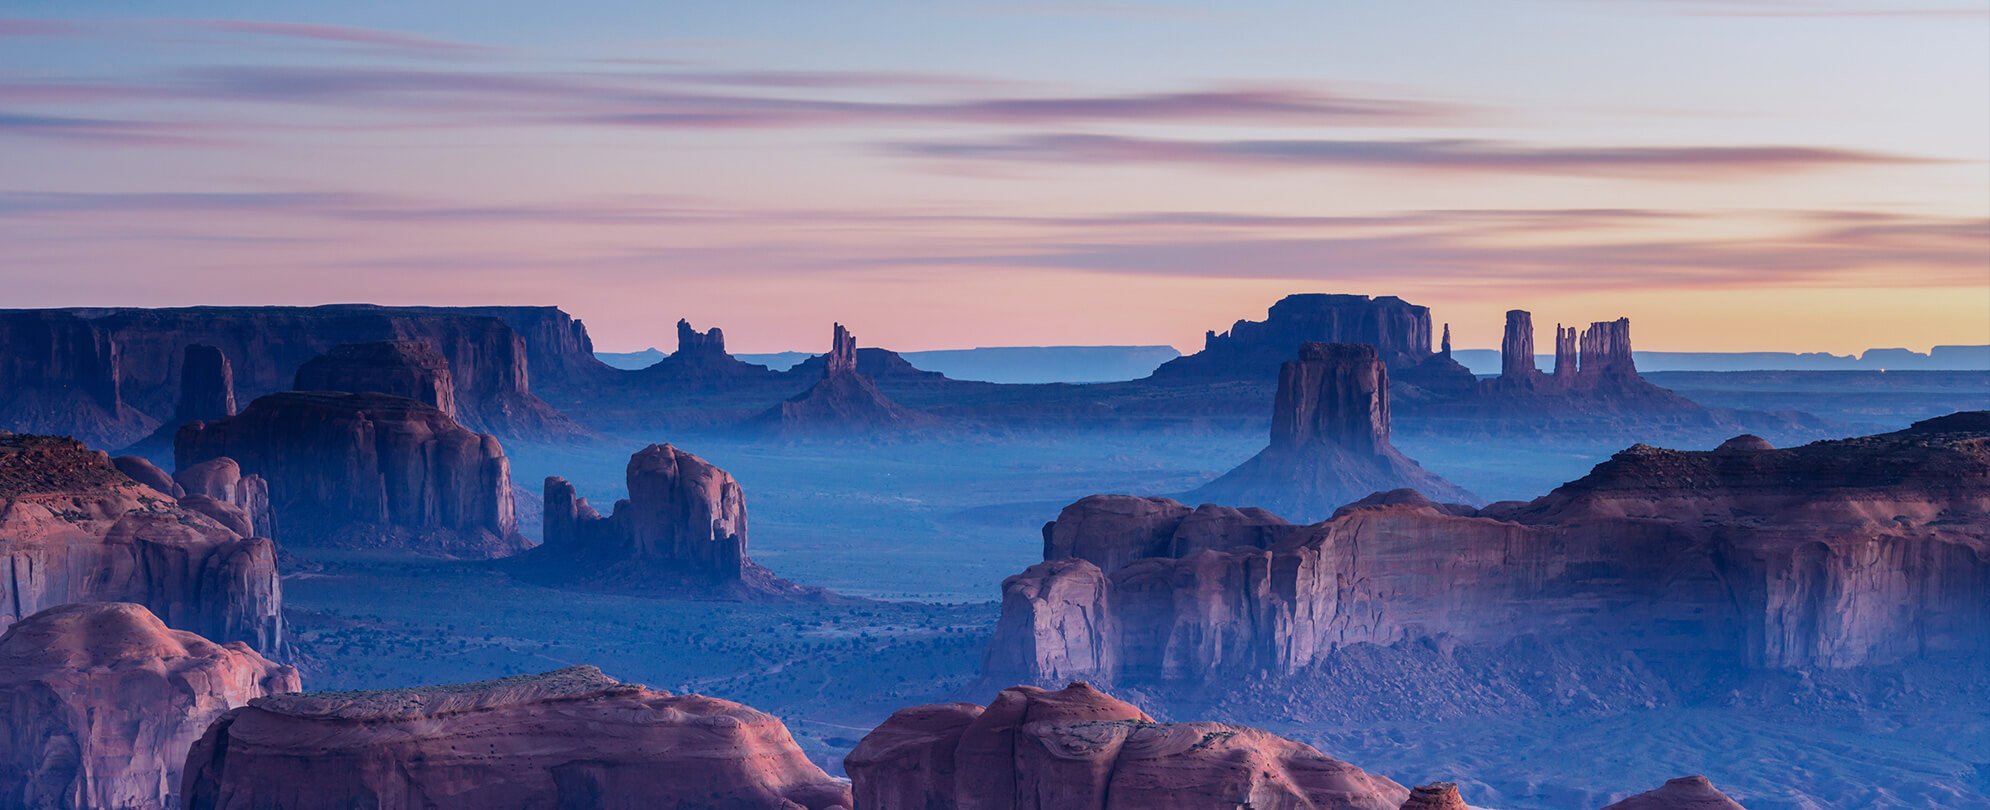 Sunset in Hunts Mesa, Monument Valley, Arizona